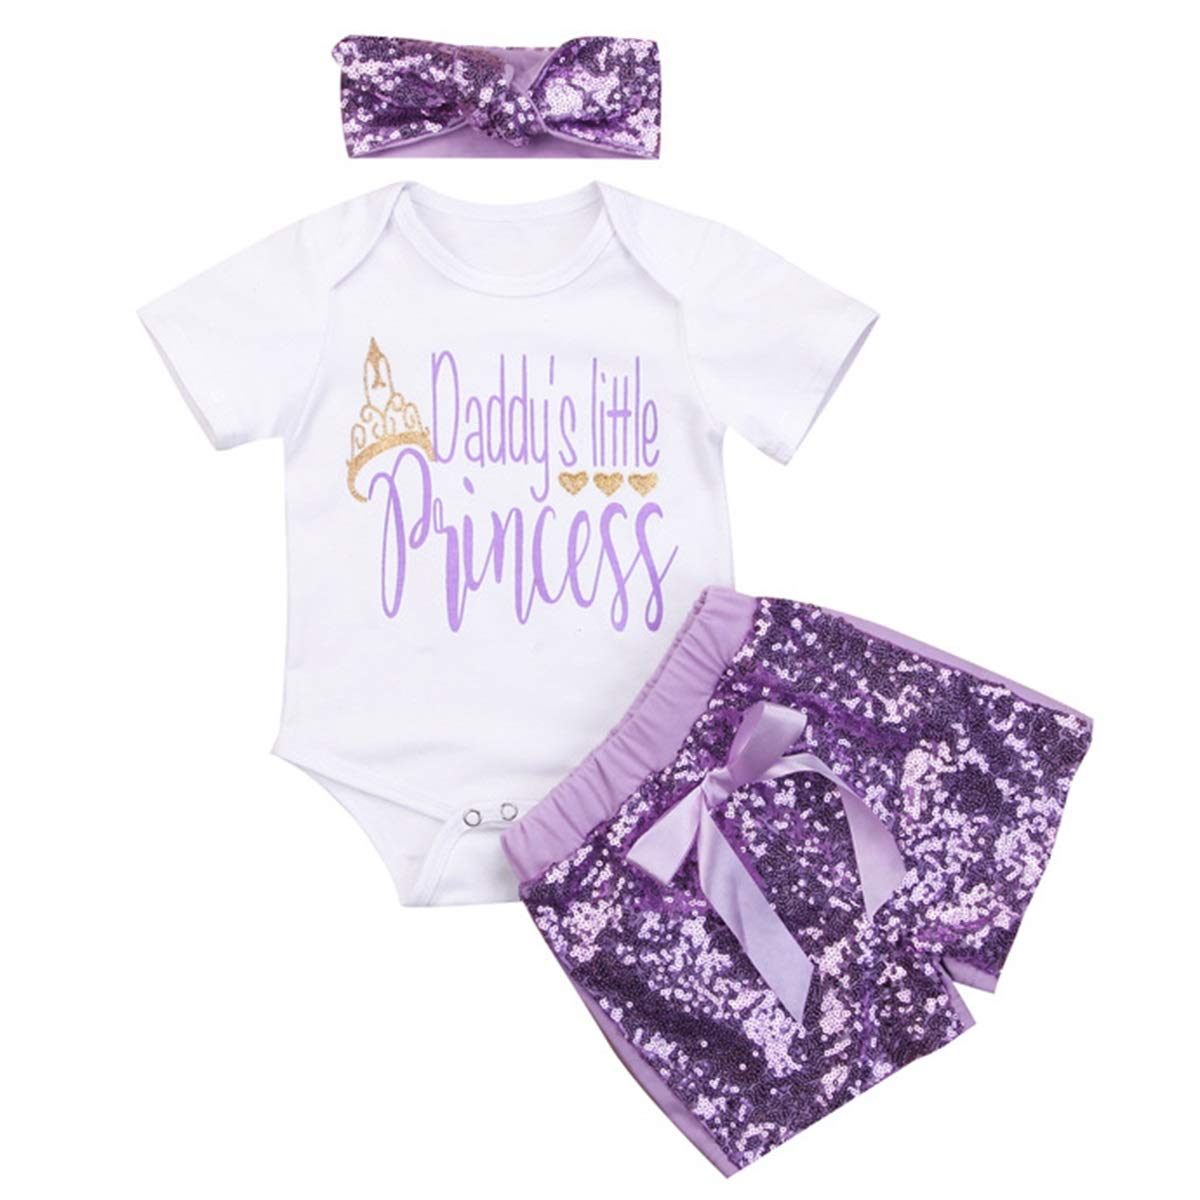 Sequin Shorts puseky Baby Girl Daddys Little Princess Romper Headband Newborn Toddler Summer Outfit Set